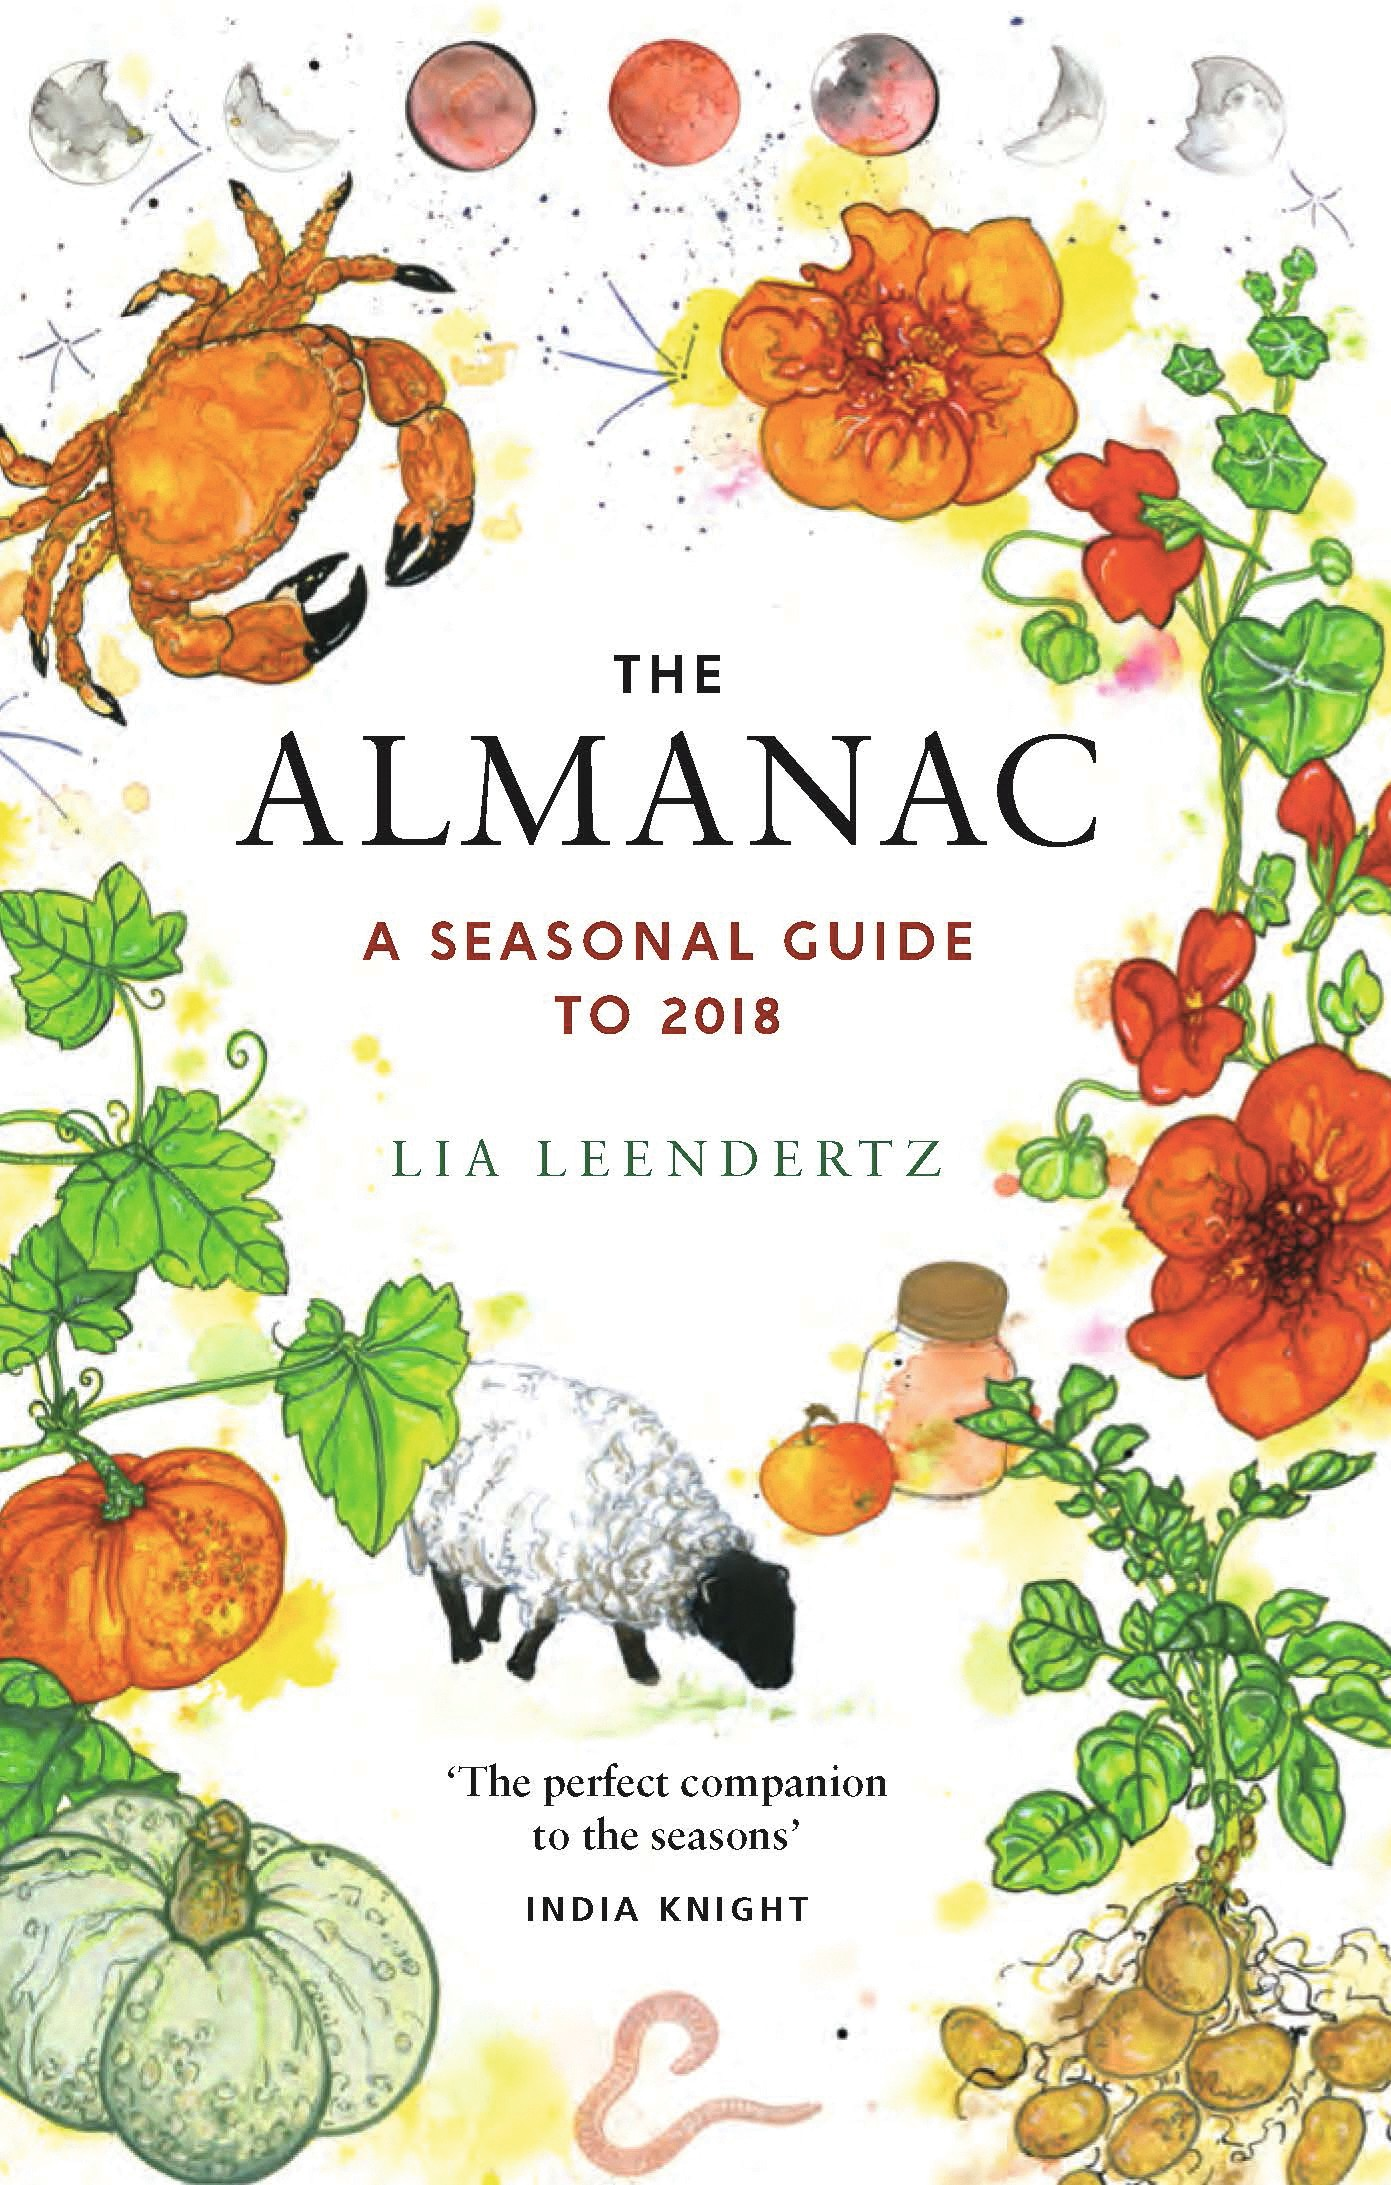 The almanac by Lia Leendertz